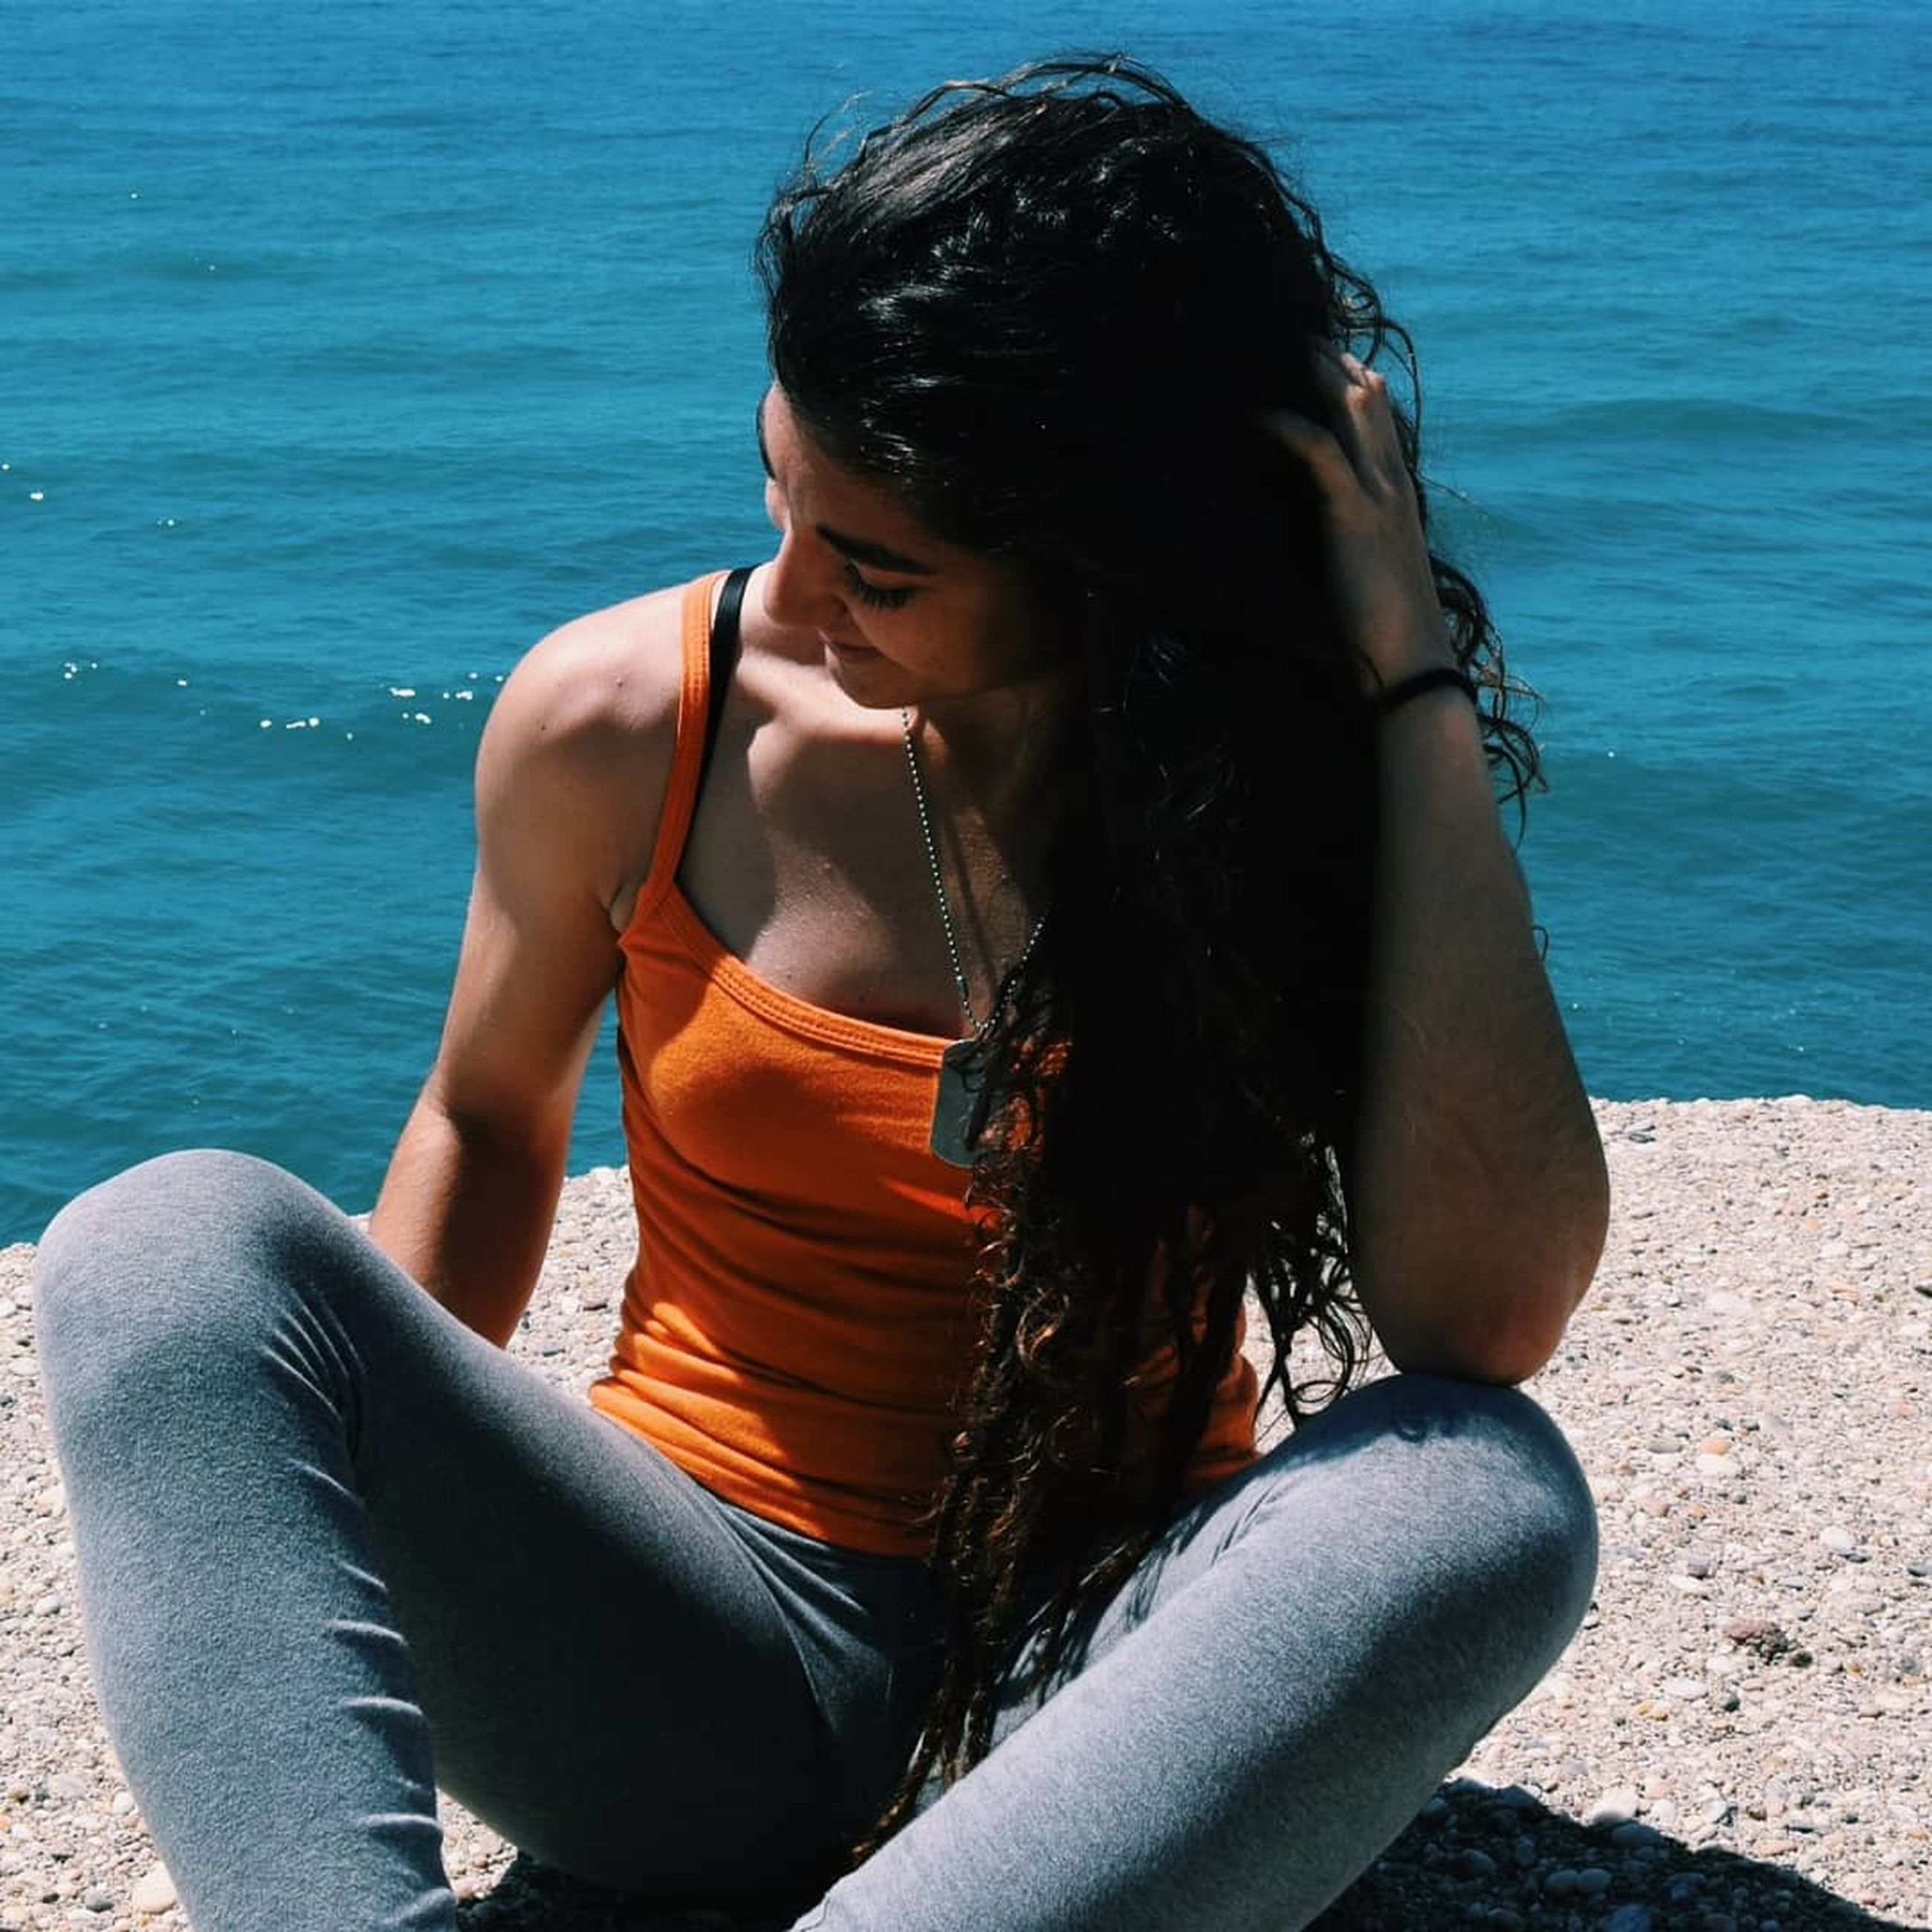 water, leisure activity, one person, sitting, lifestyles, sea, real people, three quarter length, young adult, young women, women, nature, day, sunlight, hairstyle, adult, black hair, outdoors, hair, beautiful woman